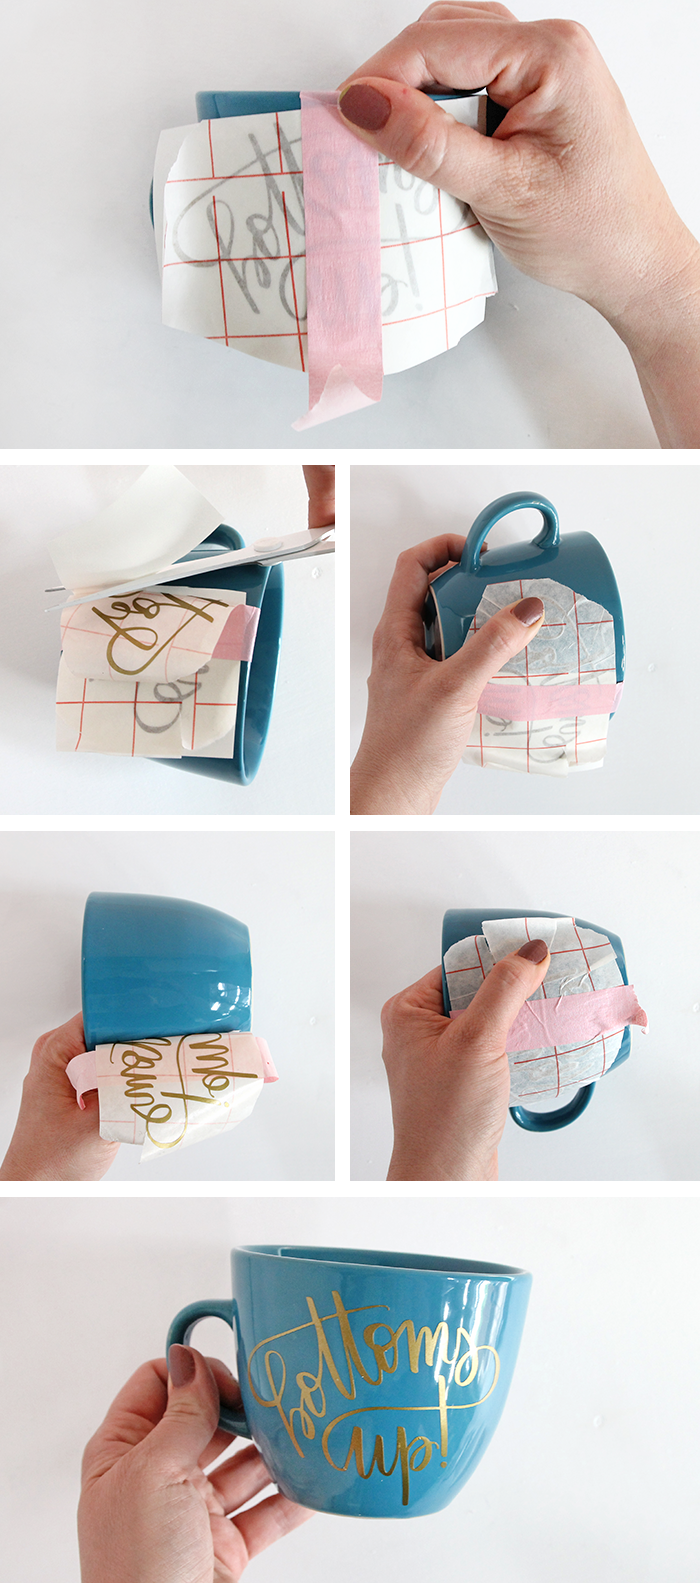 How to DIY Personalized Mugs and Tea Cups - Persia Lou